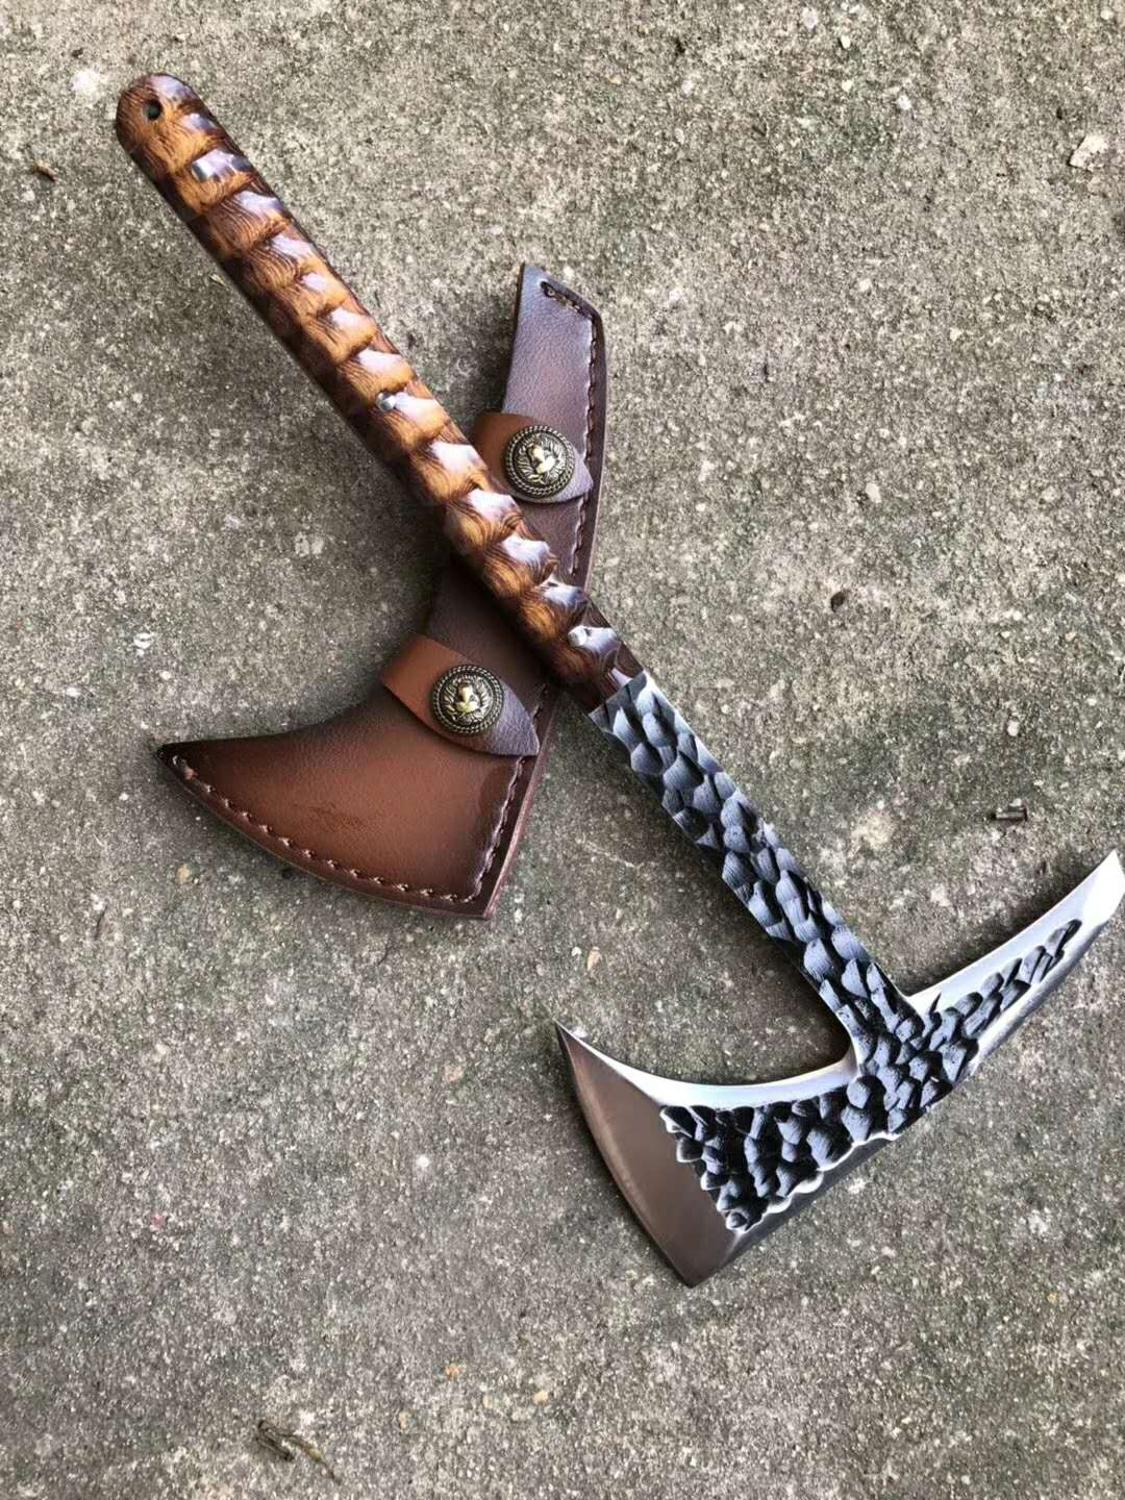 Yeelong CUSTOM HAND MADE Tactical Axe TOMAHAWK VIKING HATCHET BEARED CAMPING AXE HEAD